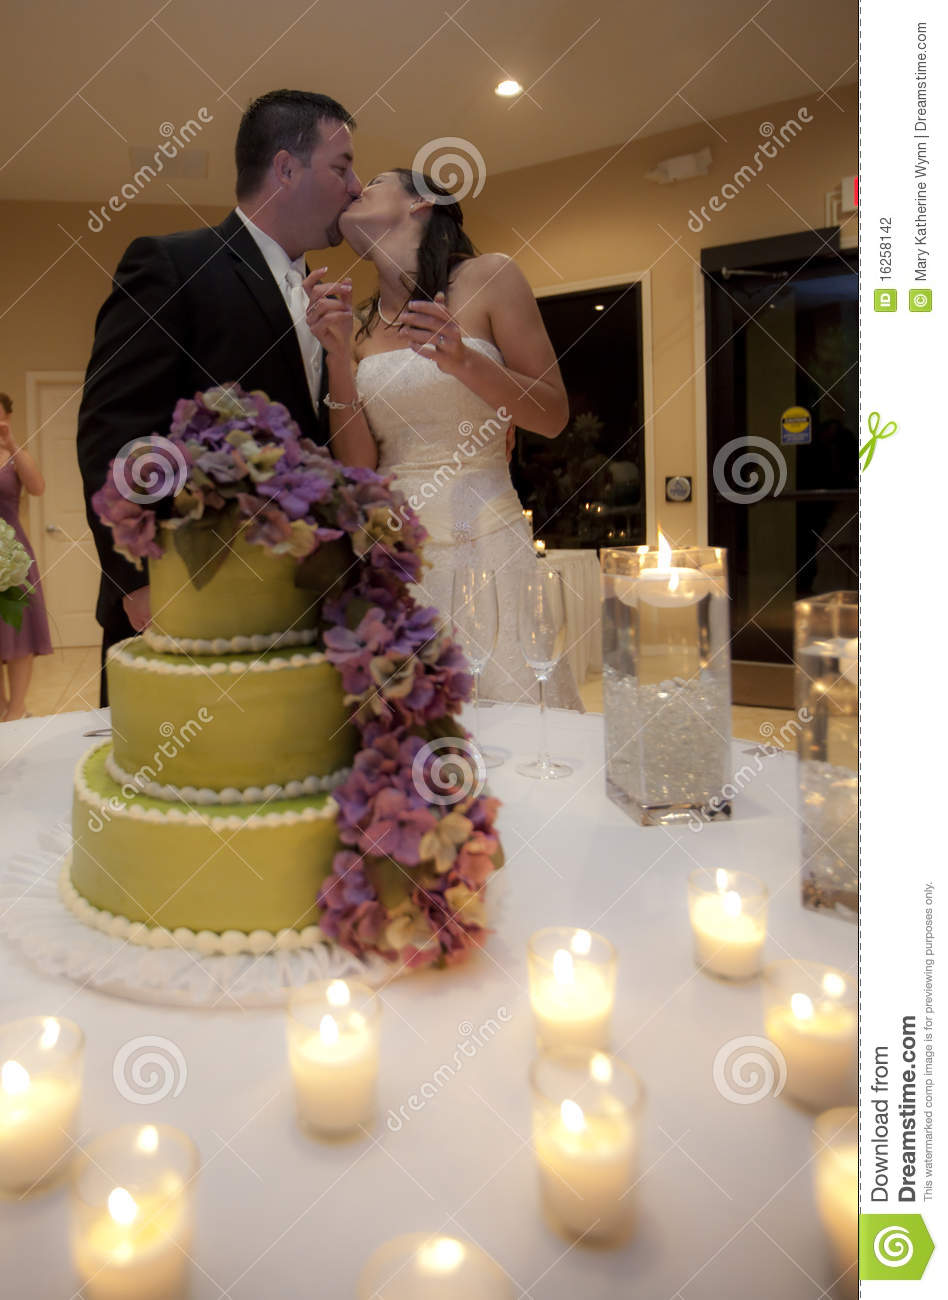 couple wedding cake wedding by cake stock photography image 13016